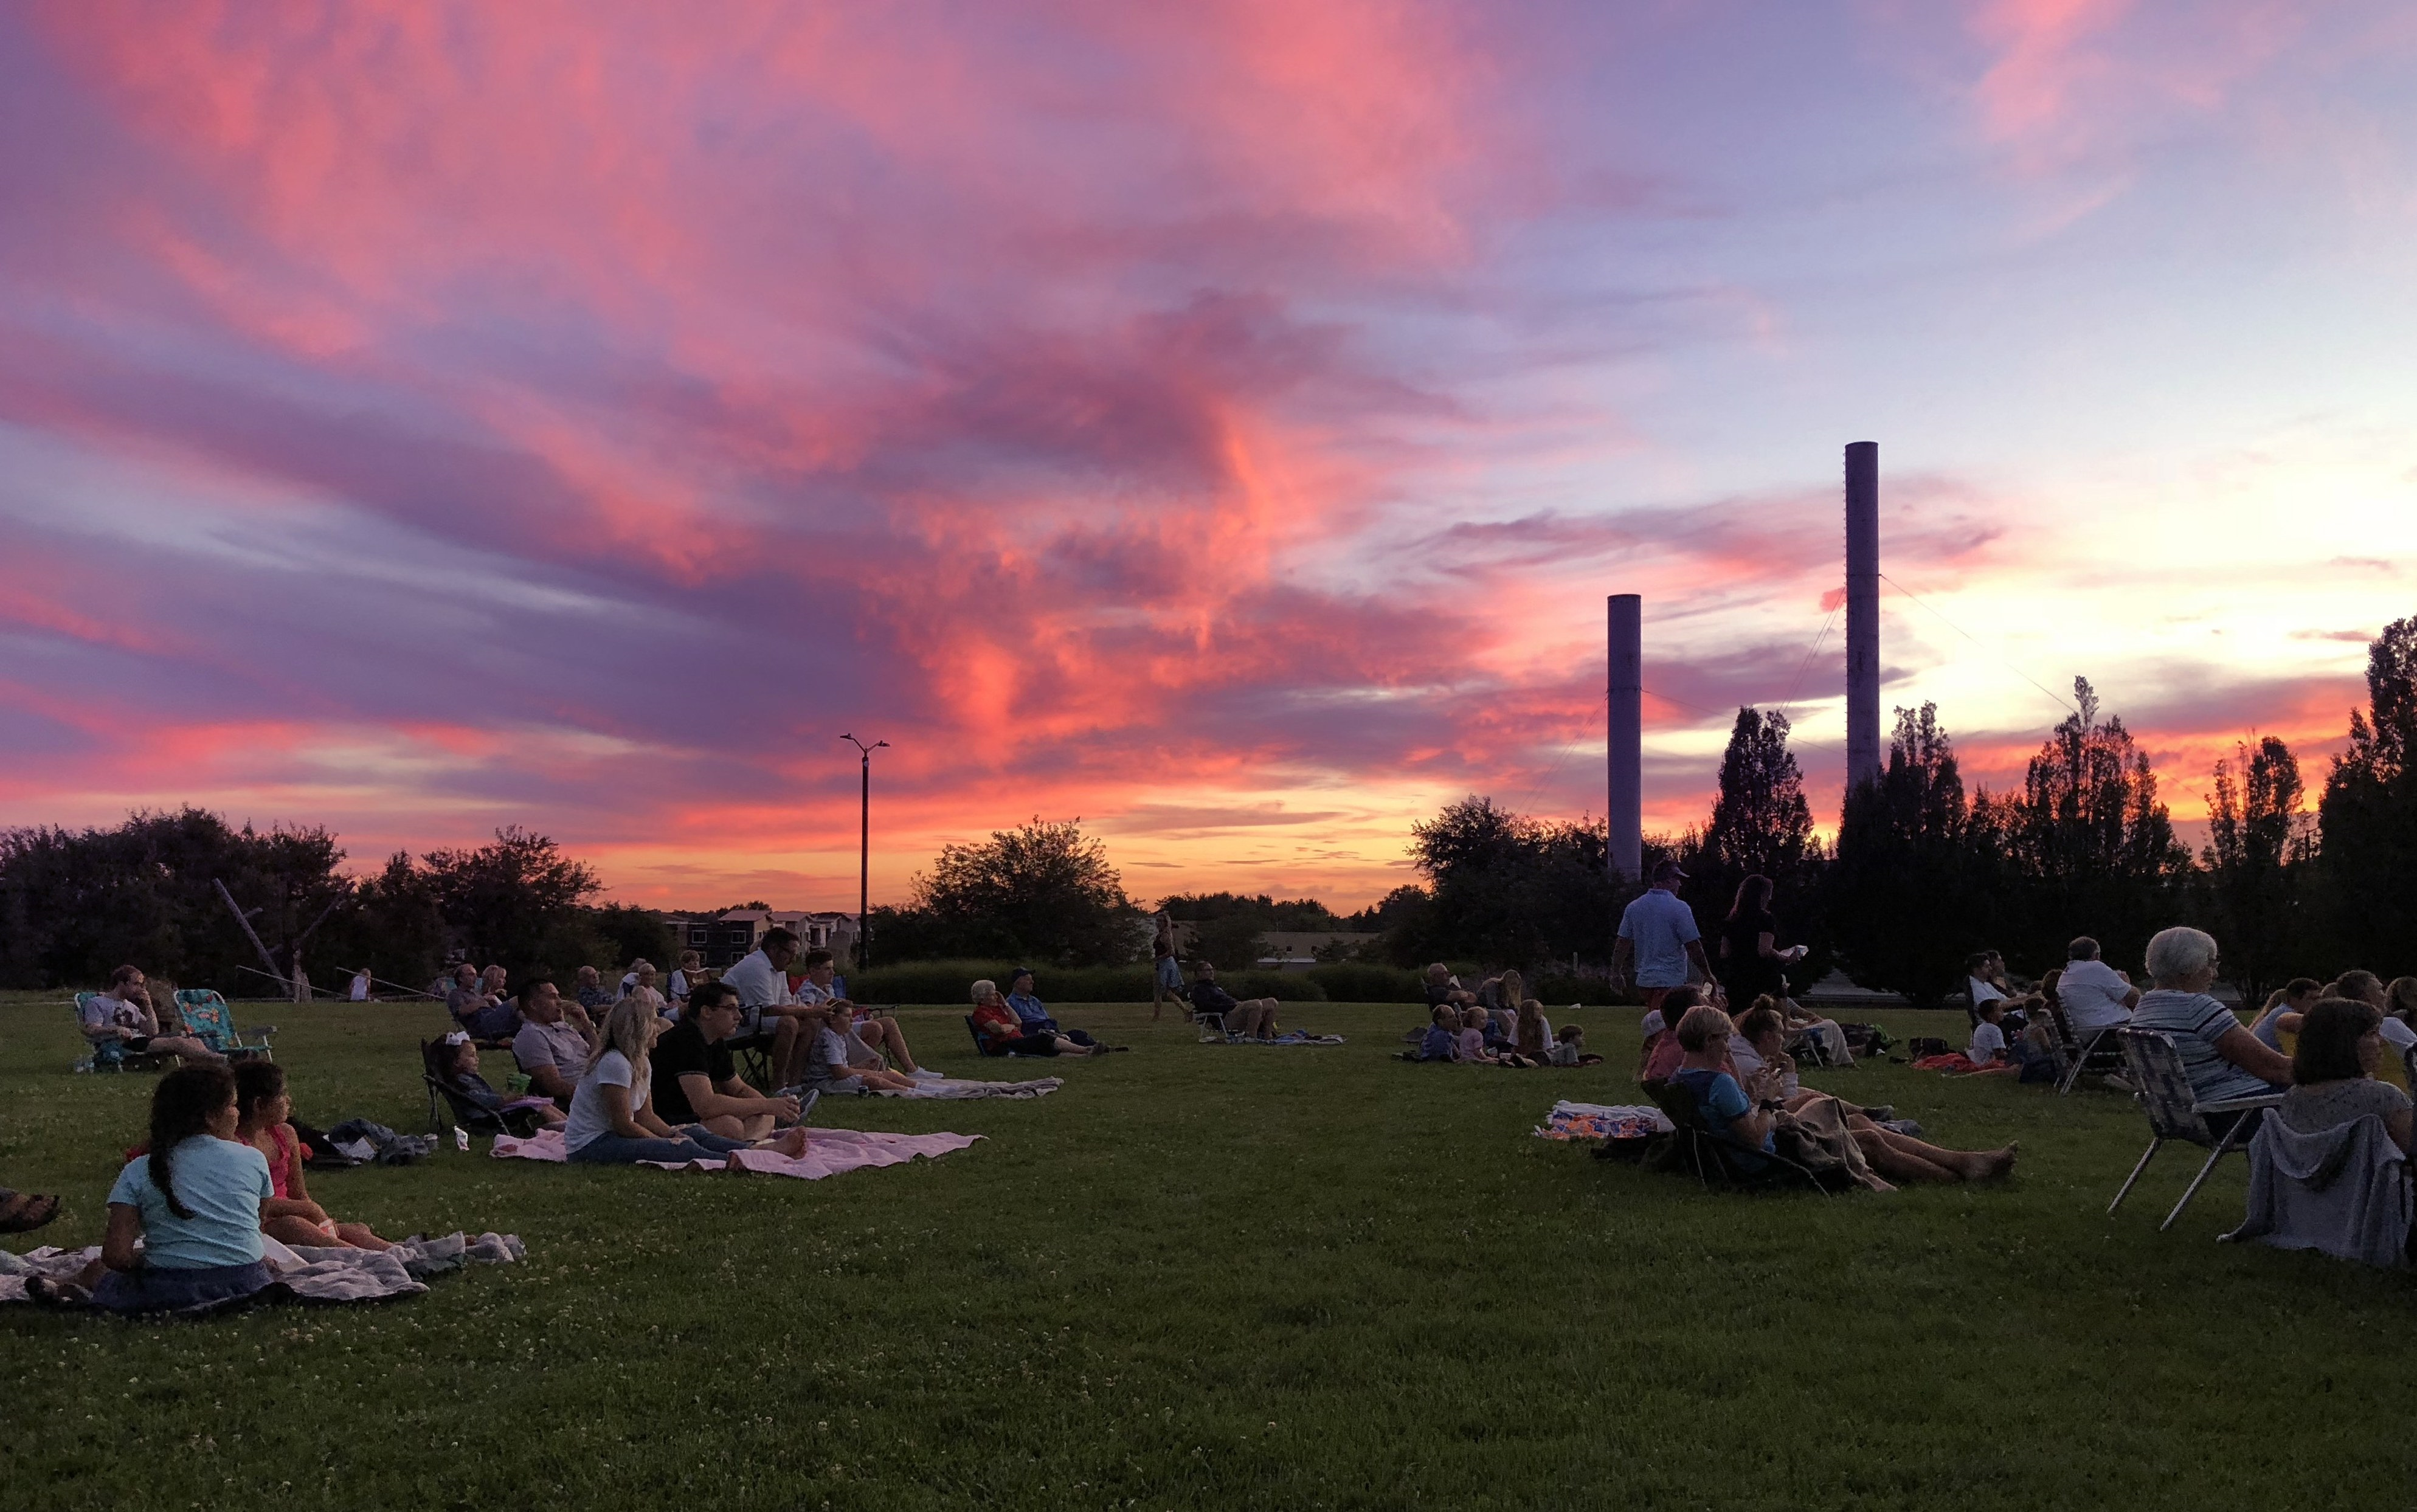 people seating on grass sunset